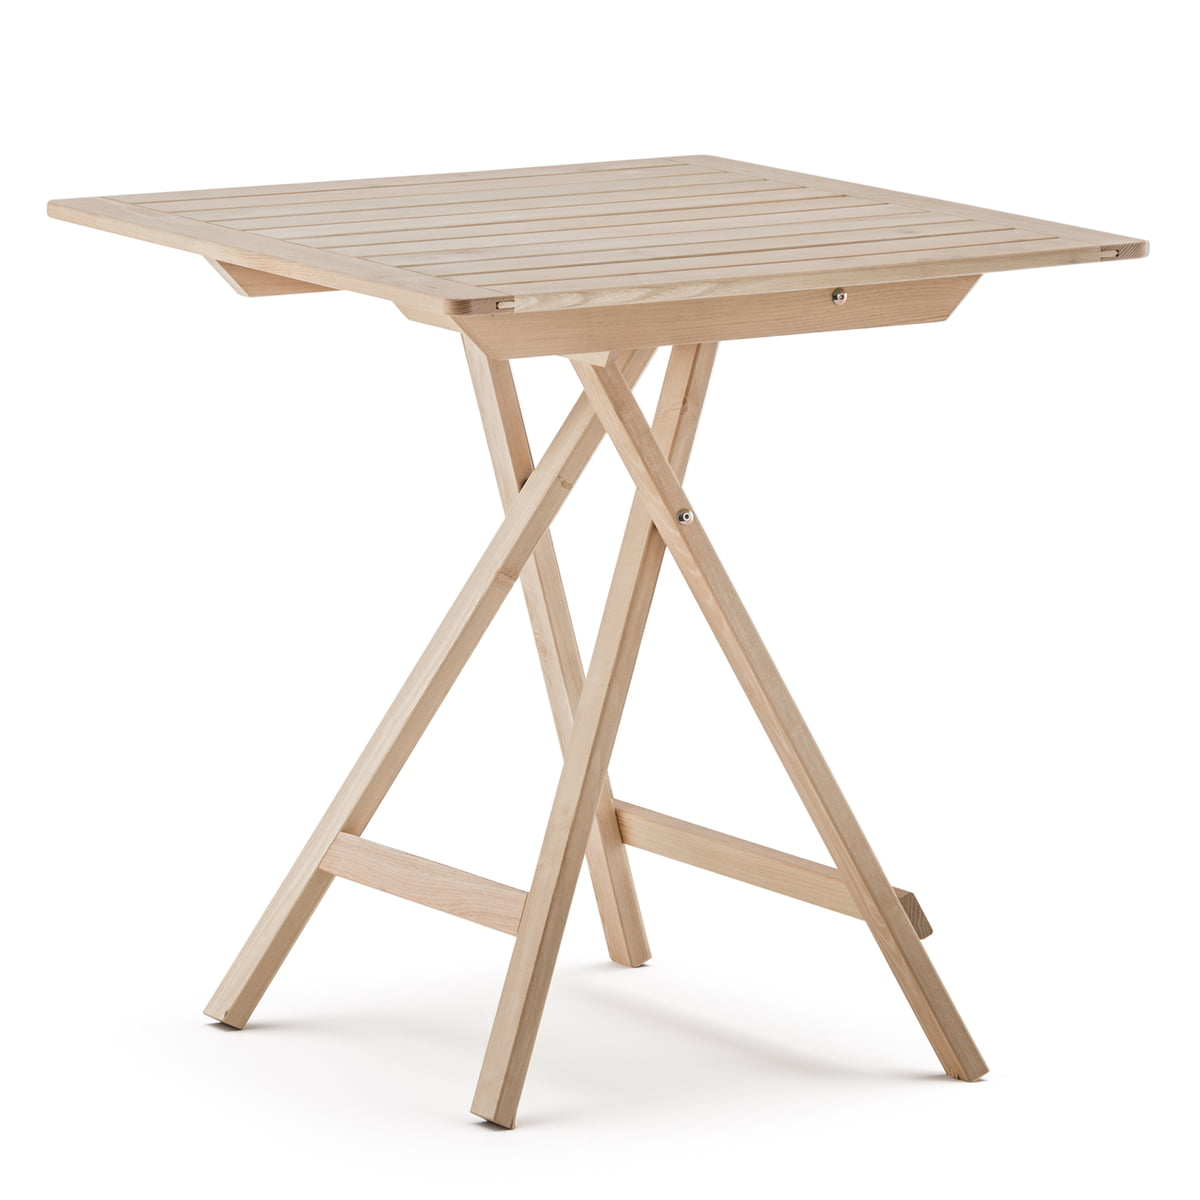 Fiam - Robin 70 table en bois, robinia